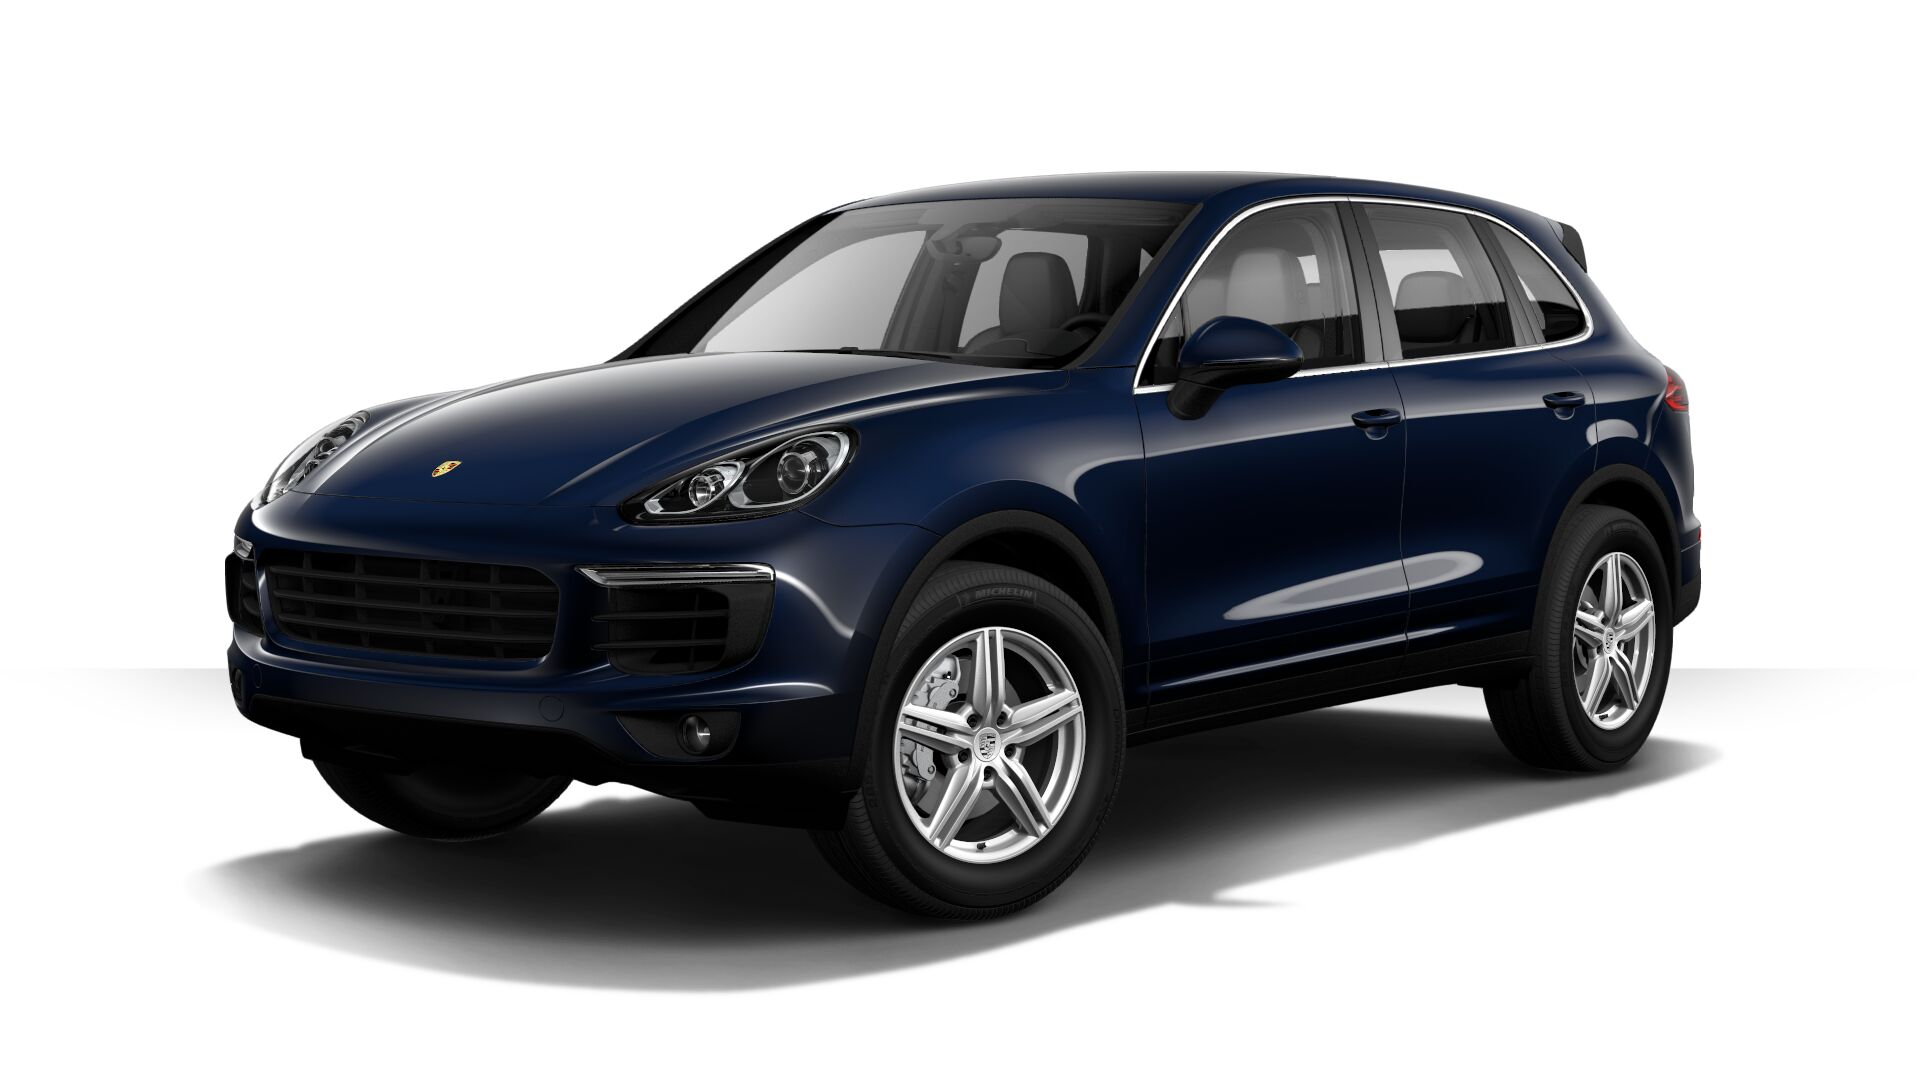 Porsche Cayenne 2018 coming this fall